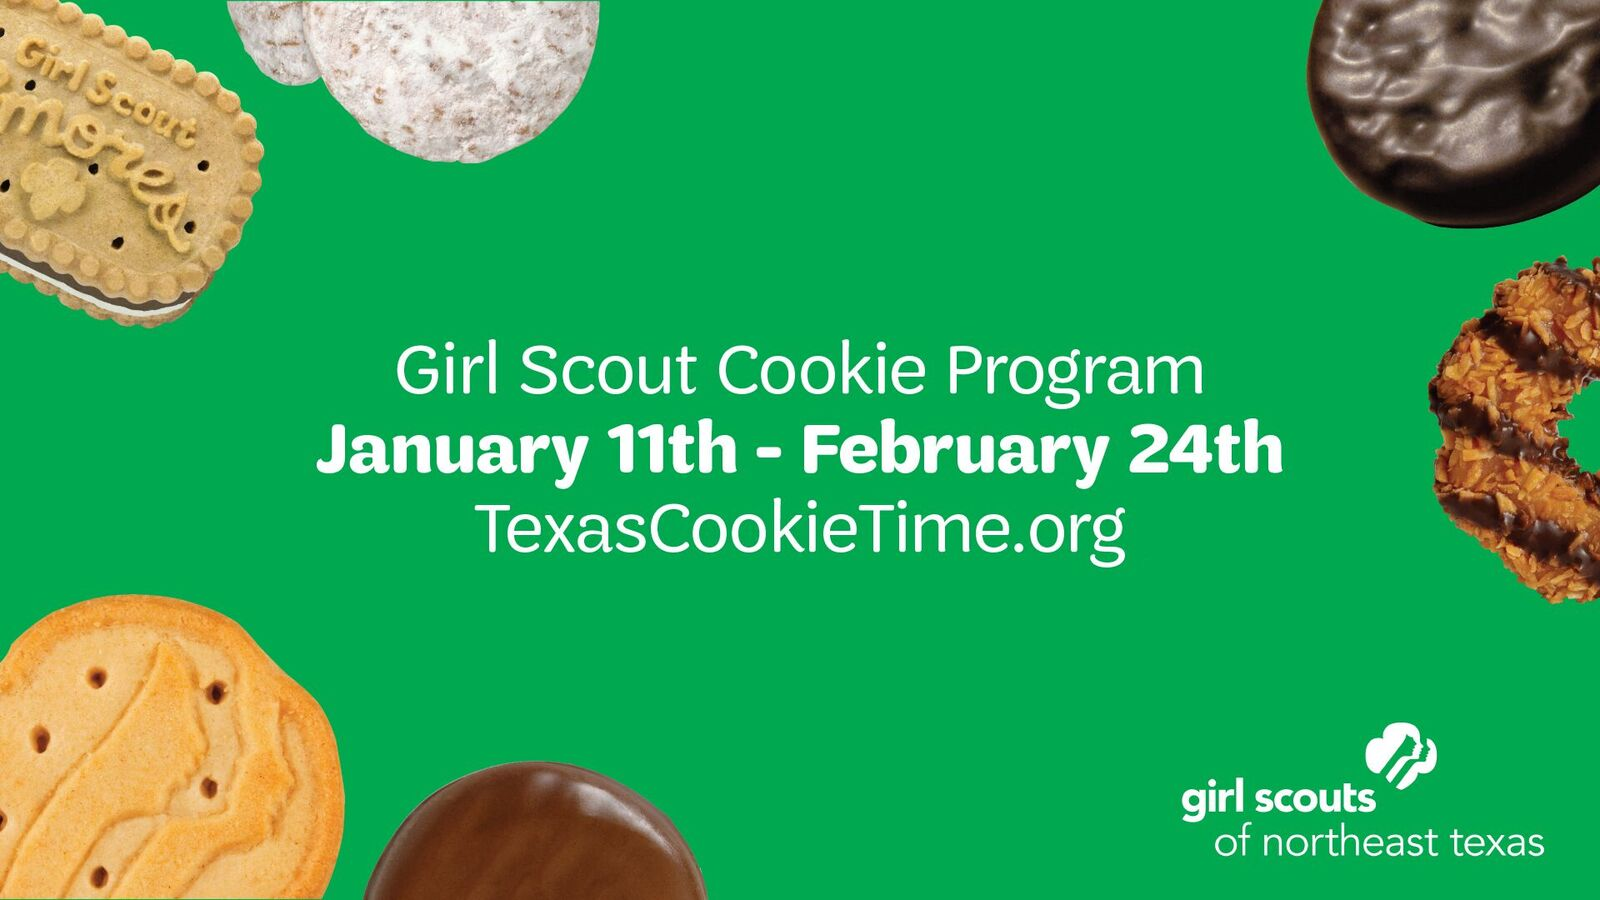 2019 Girl Scout Cookie Season Kicks Off in Northeast Texas